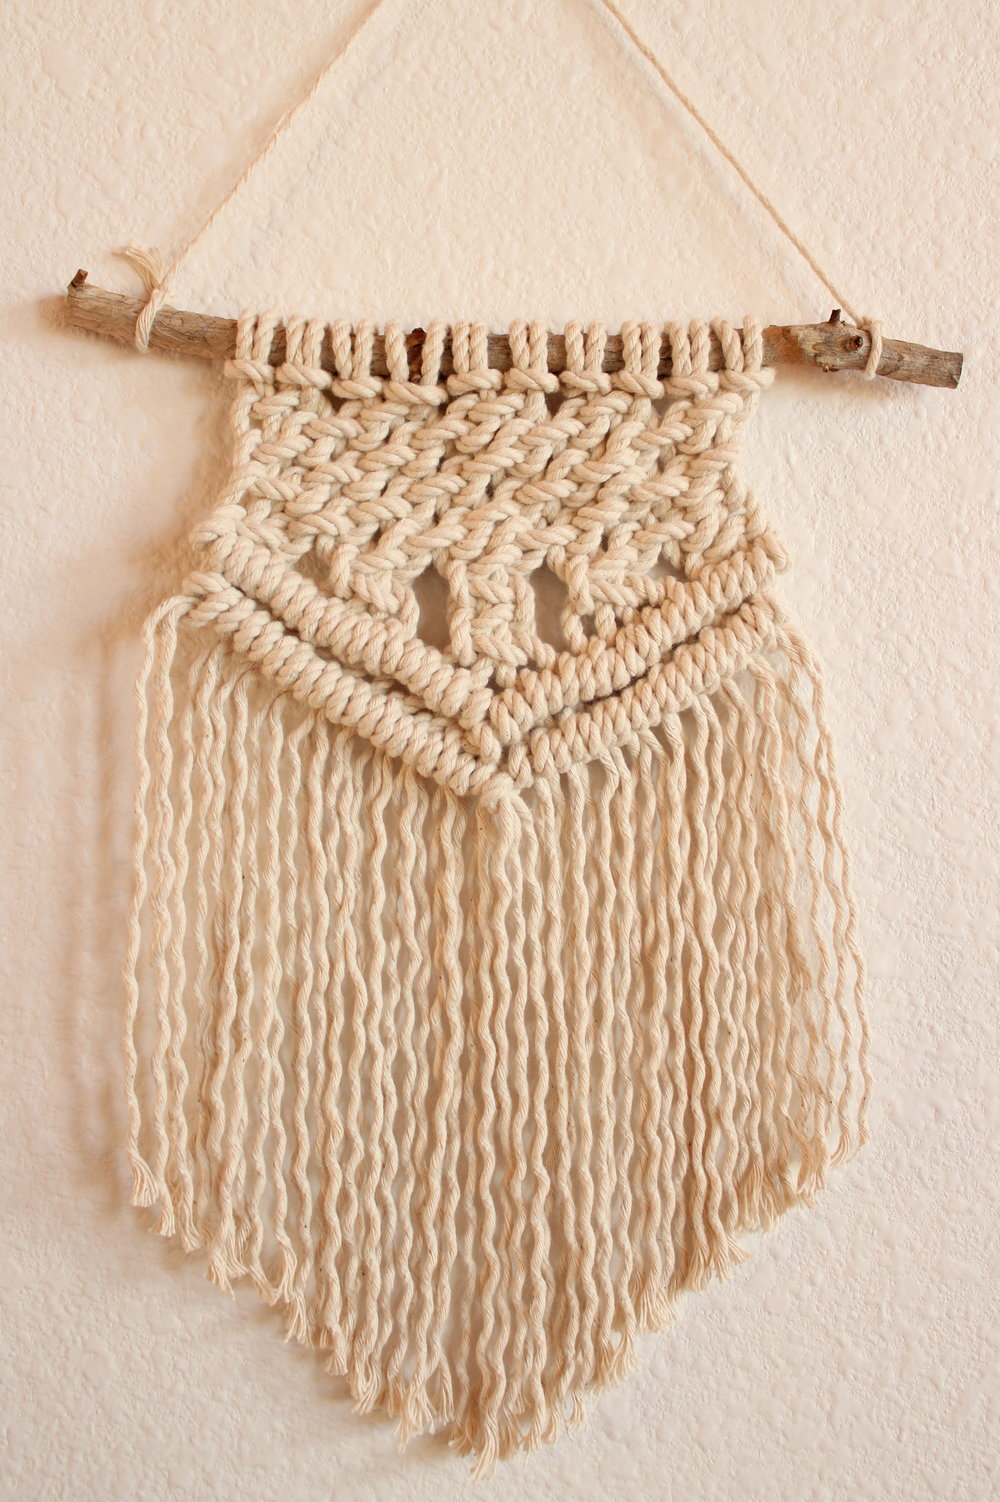 TAKE HEART MACRAME WALL HANGING